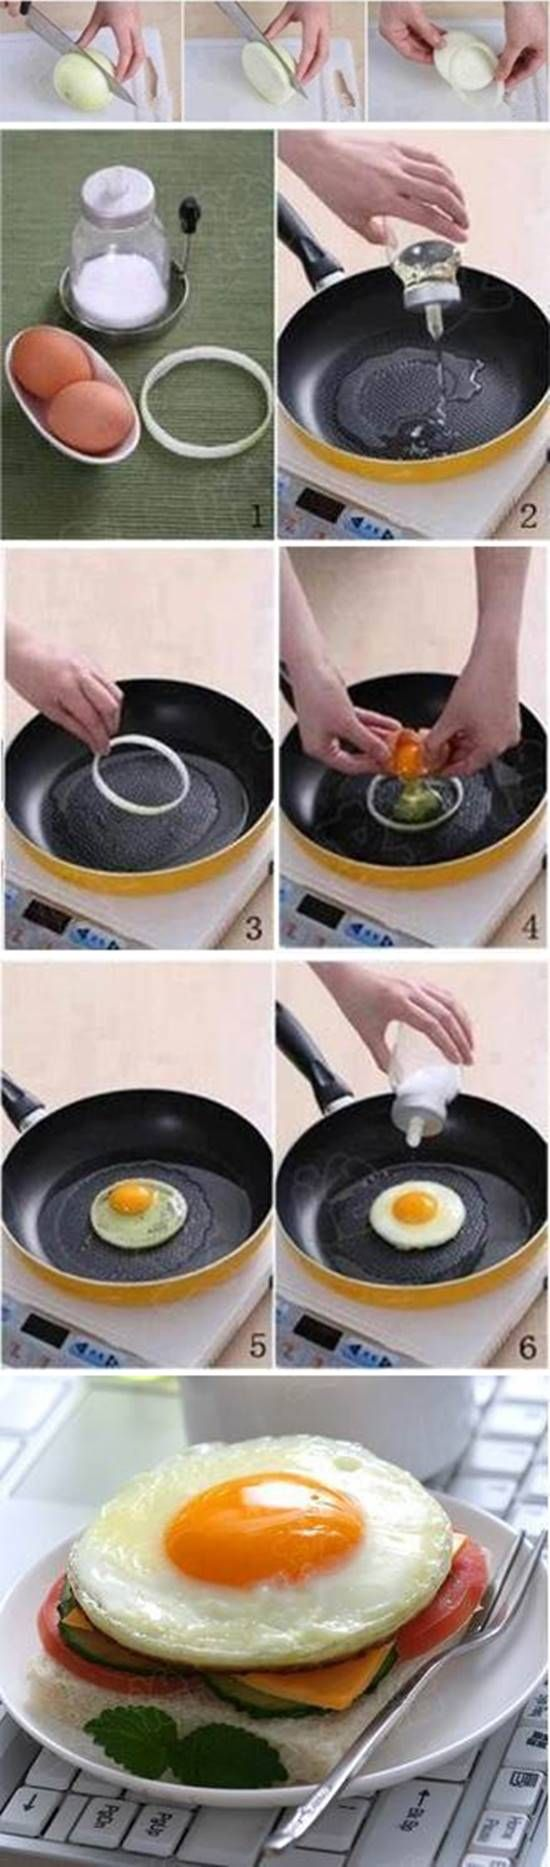 How to Make Perfect Round Shaped Fried Egg #cooking #tips